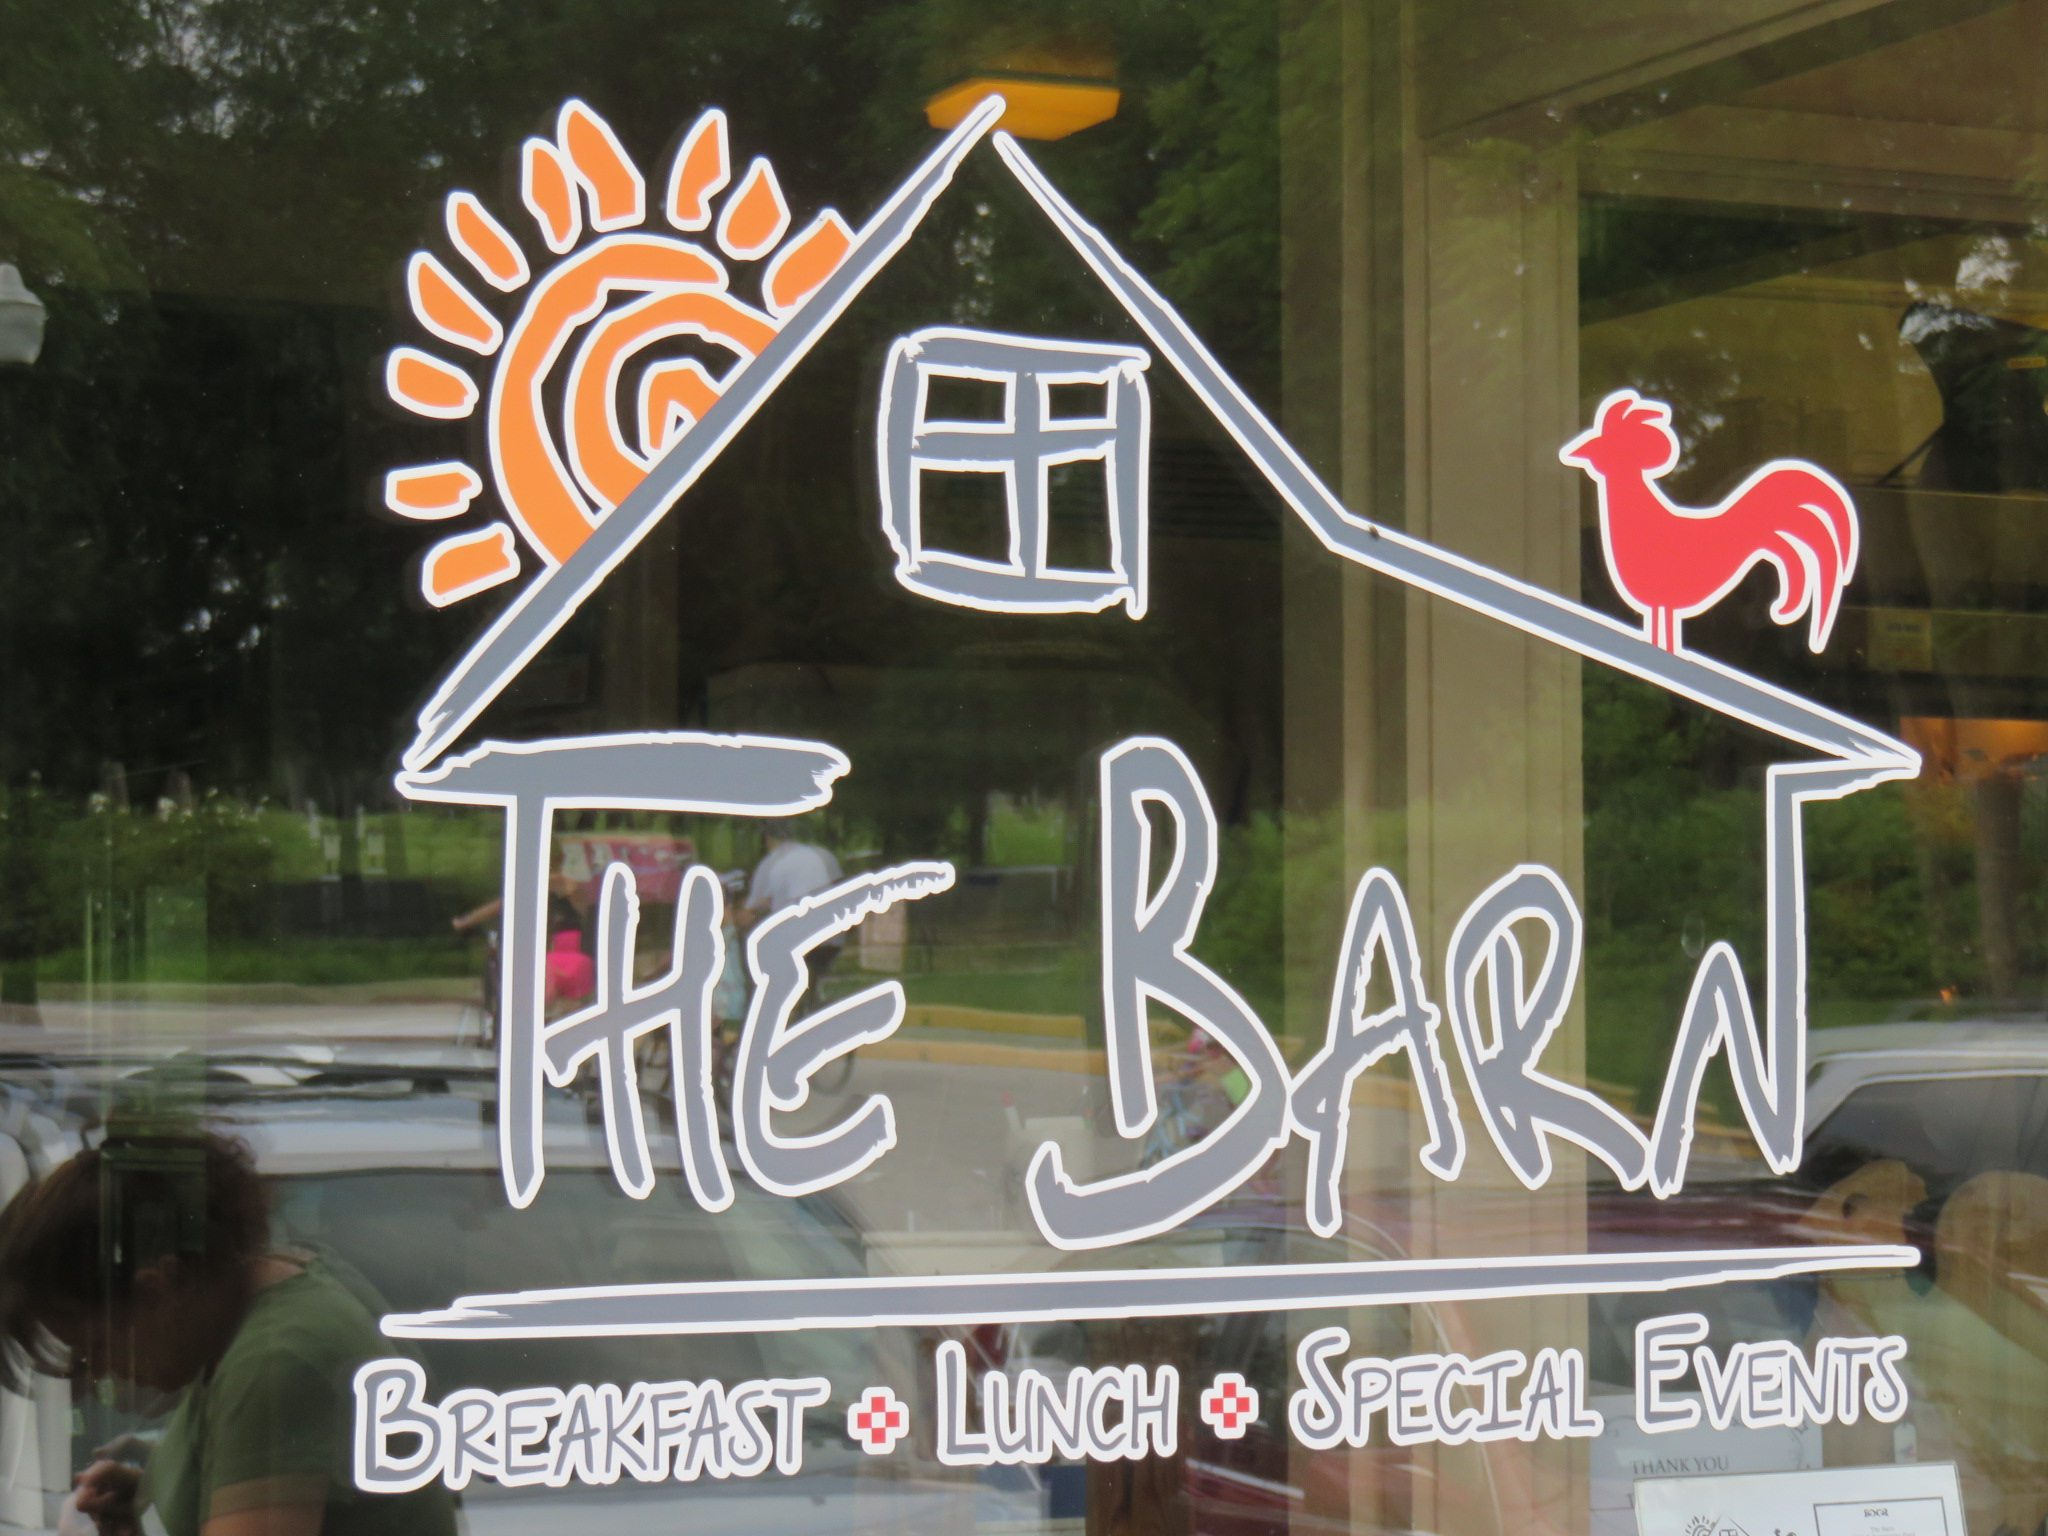 Exploring St. Louis One Meal at a Time: The Barn